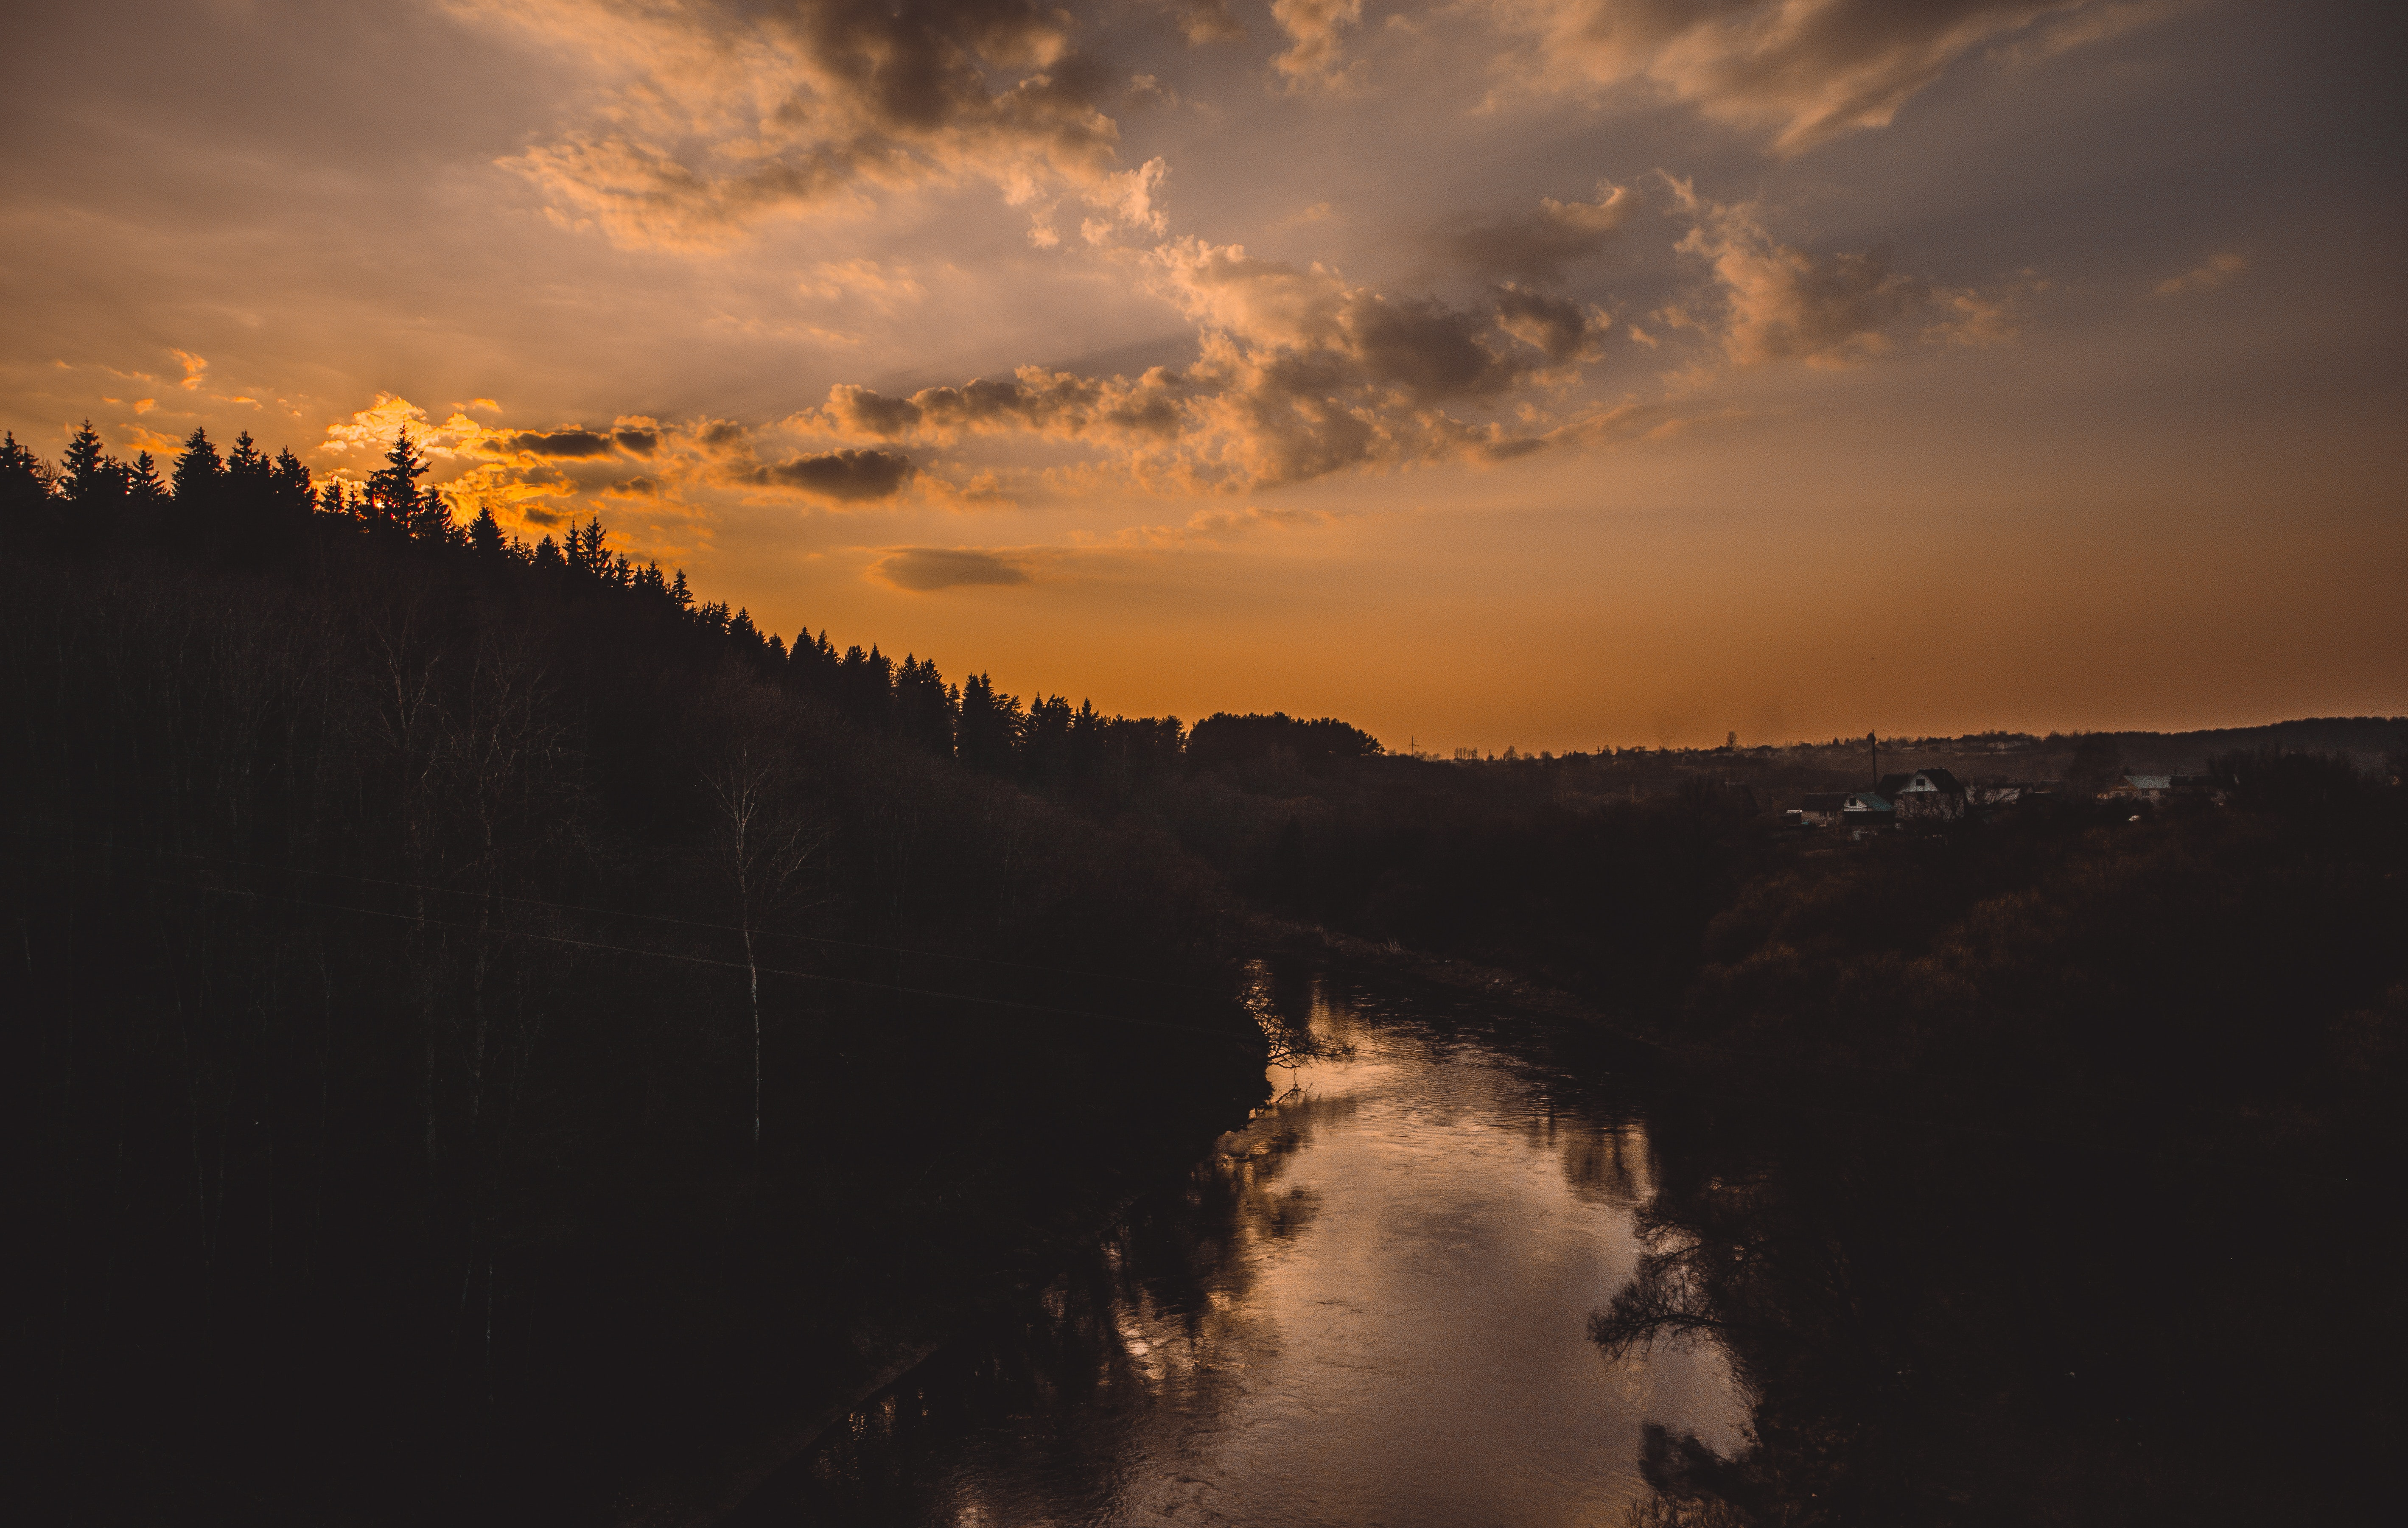 Silhouette of Trees Beside River, Afterglow, Peaceful, Water, Trees, HQ Photo